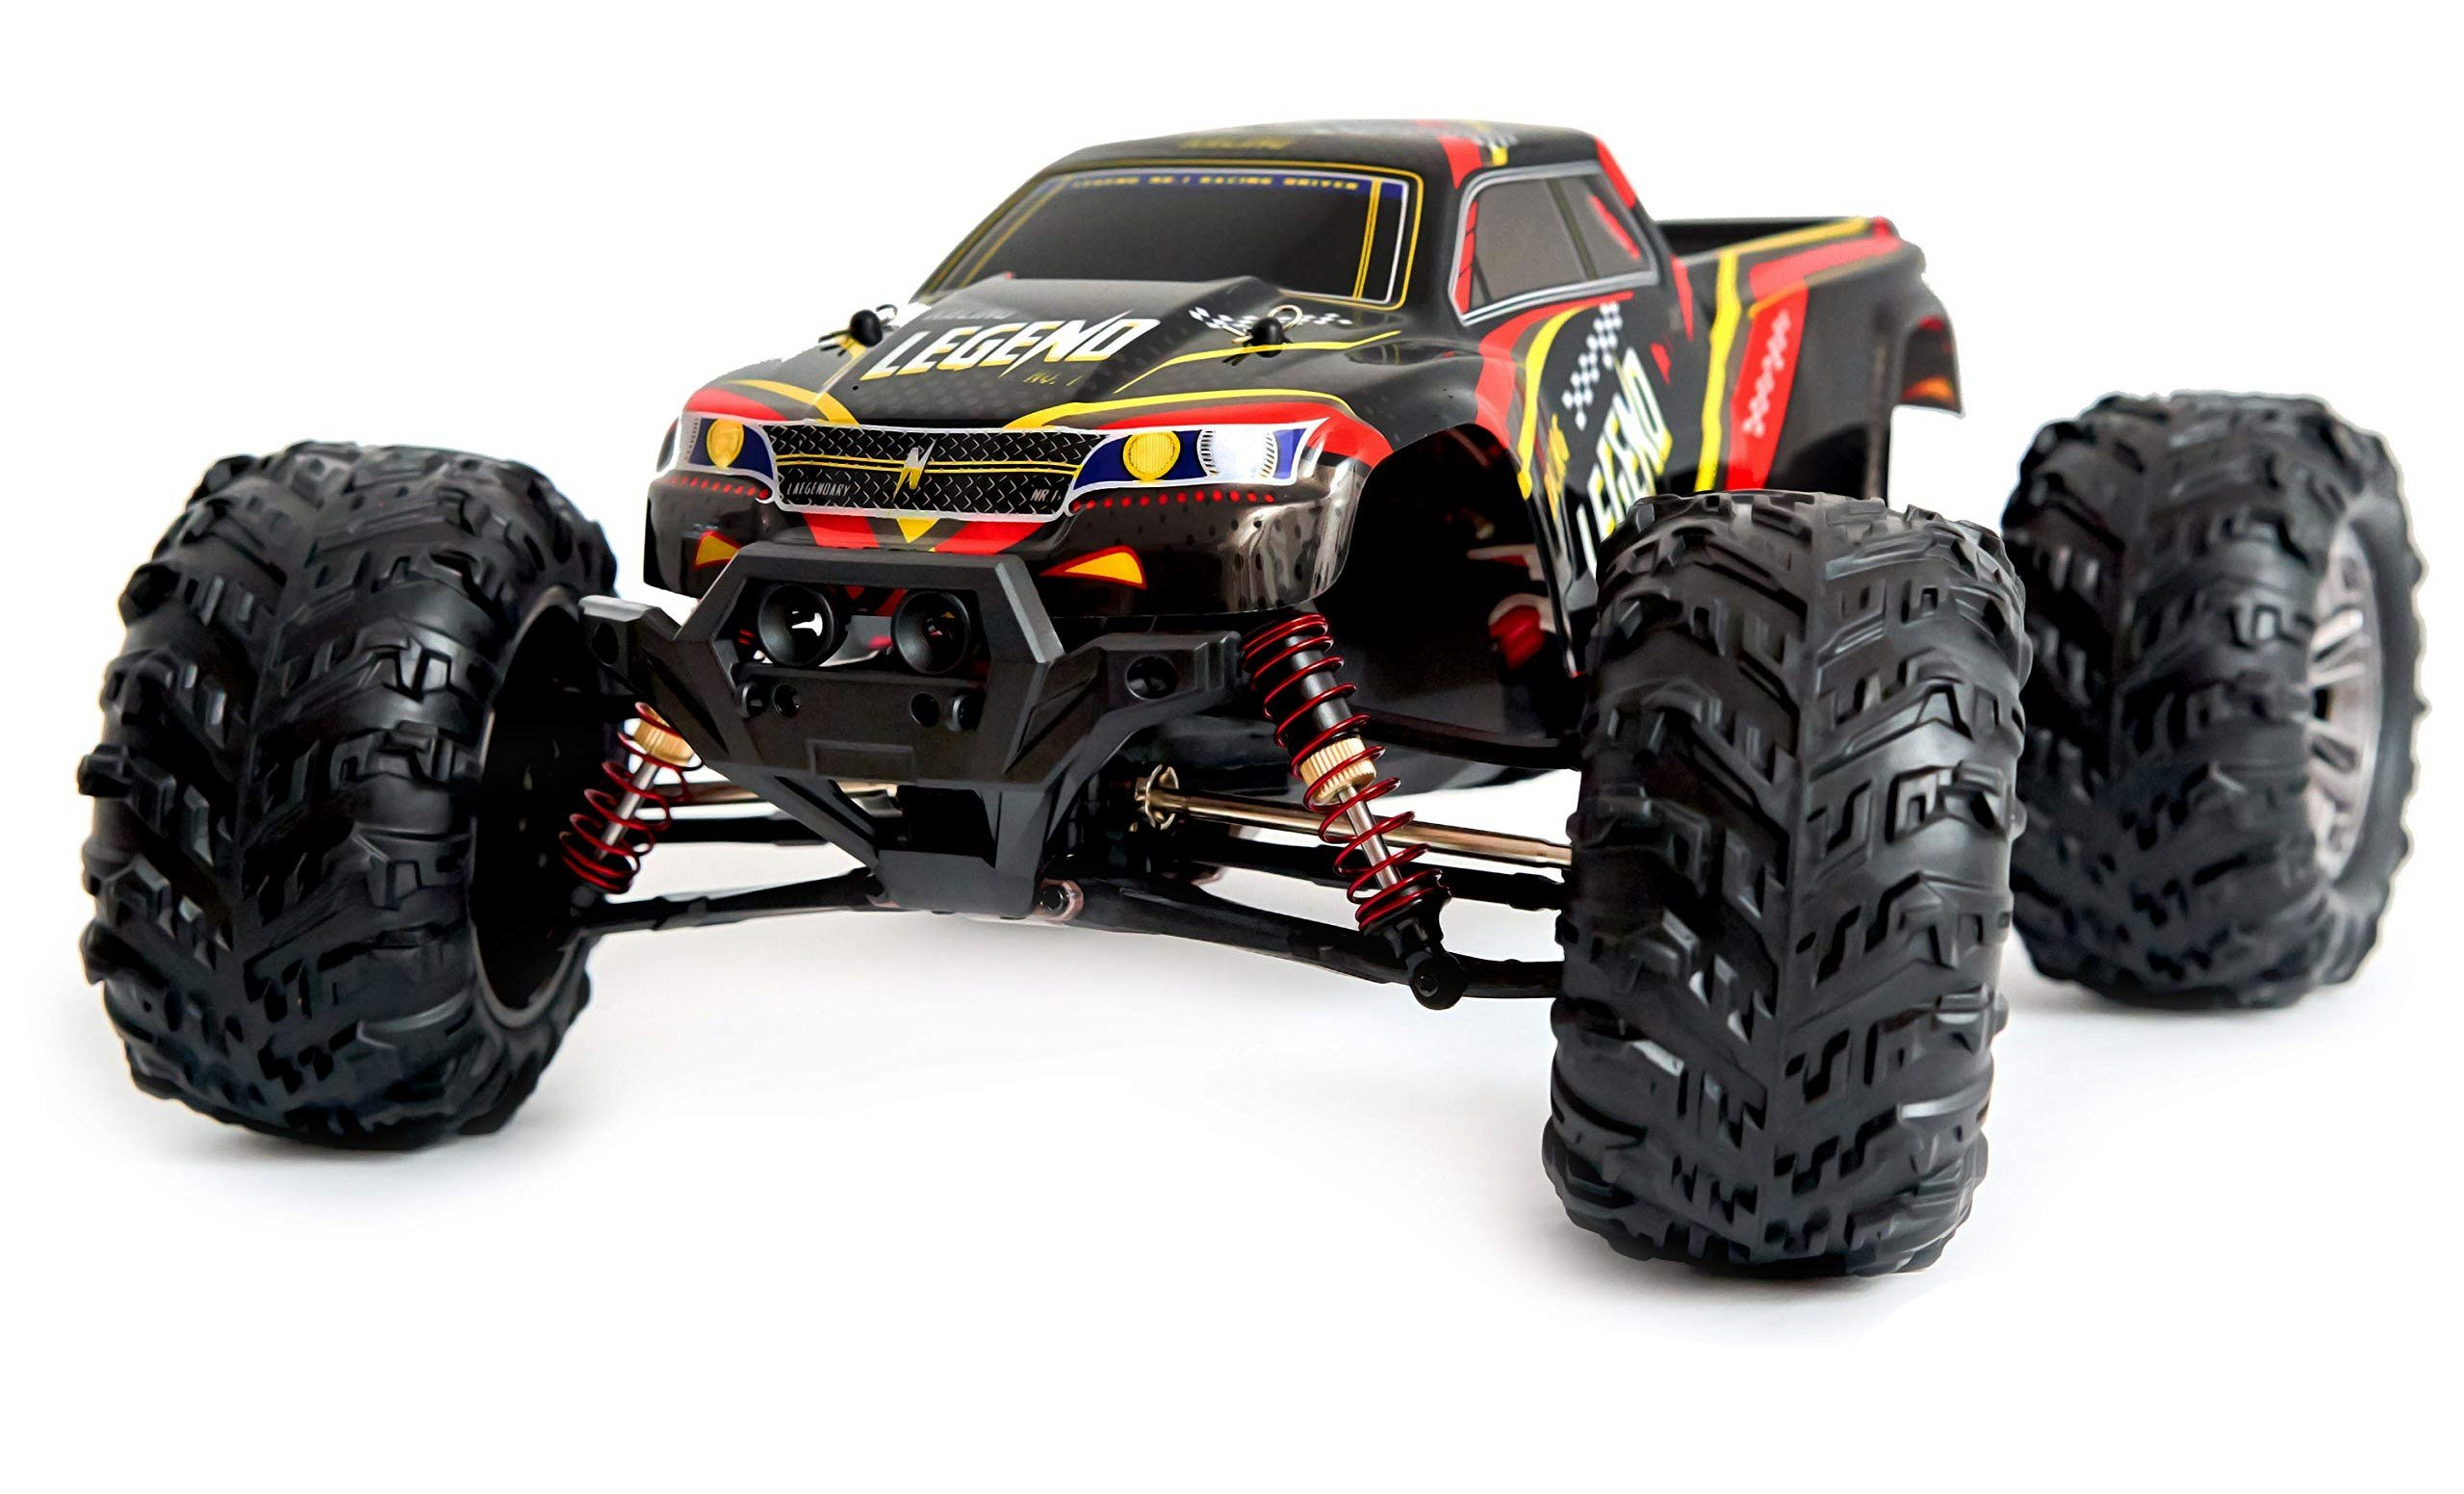 Laegendary Remote Control Car 4x4 Off Road Monster Truck review